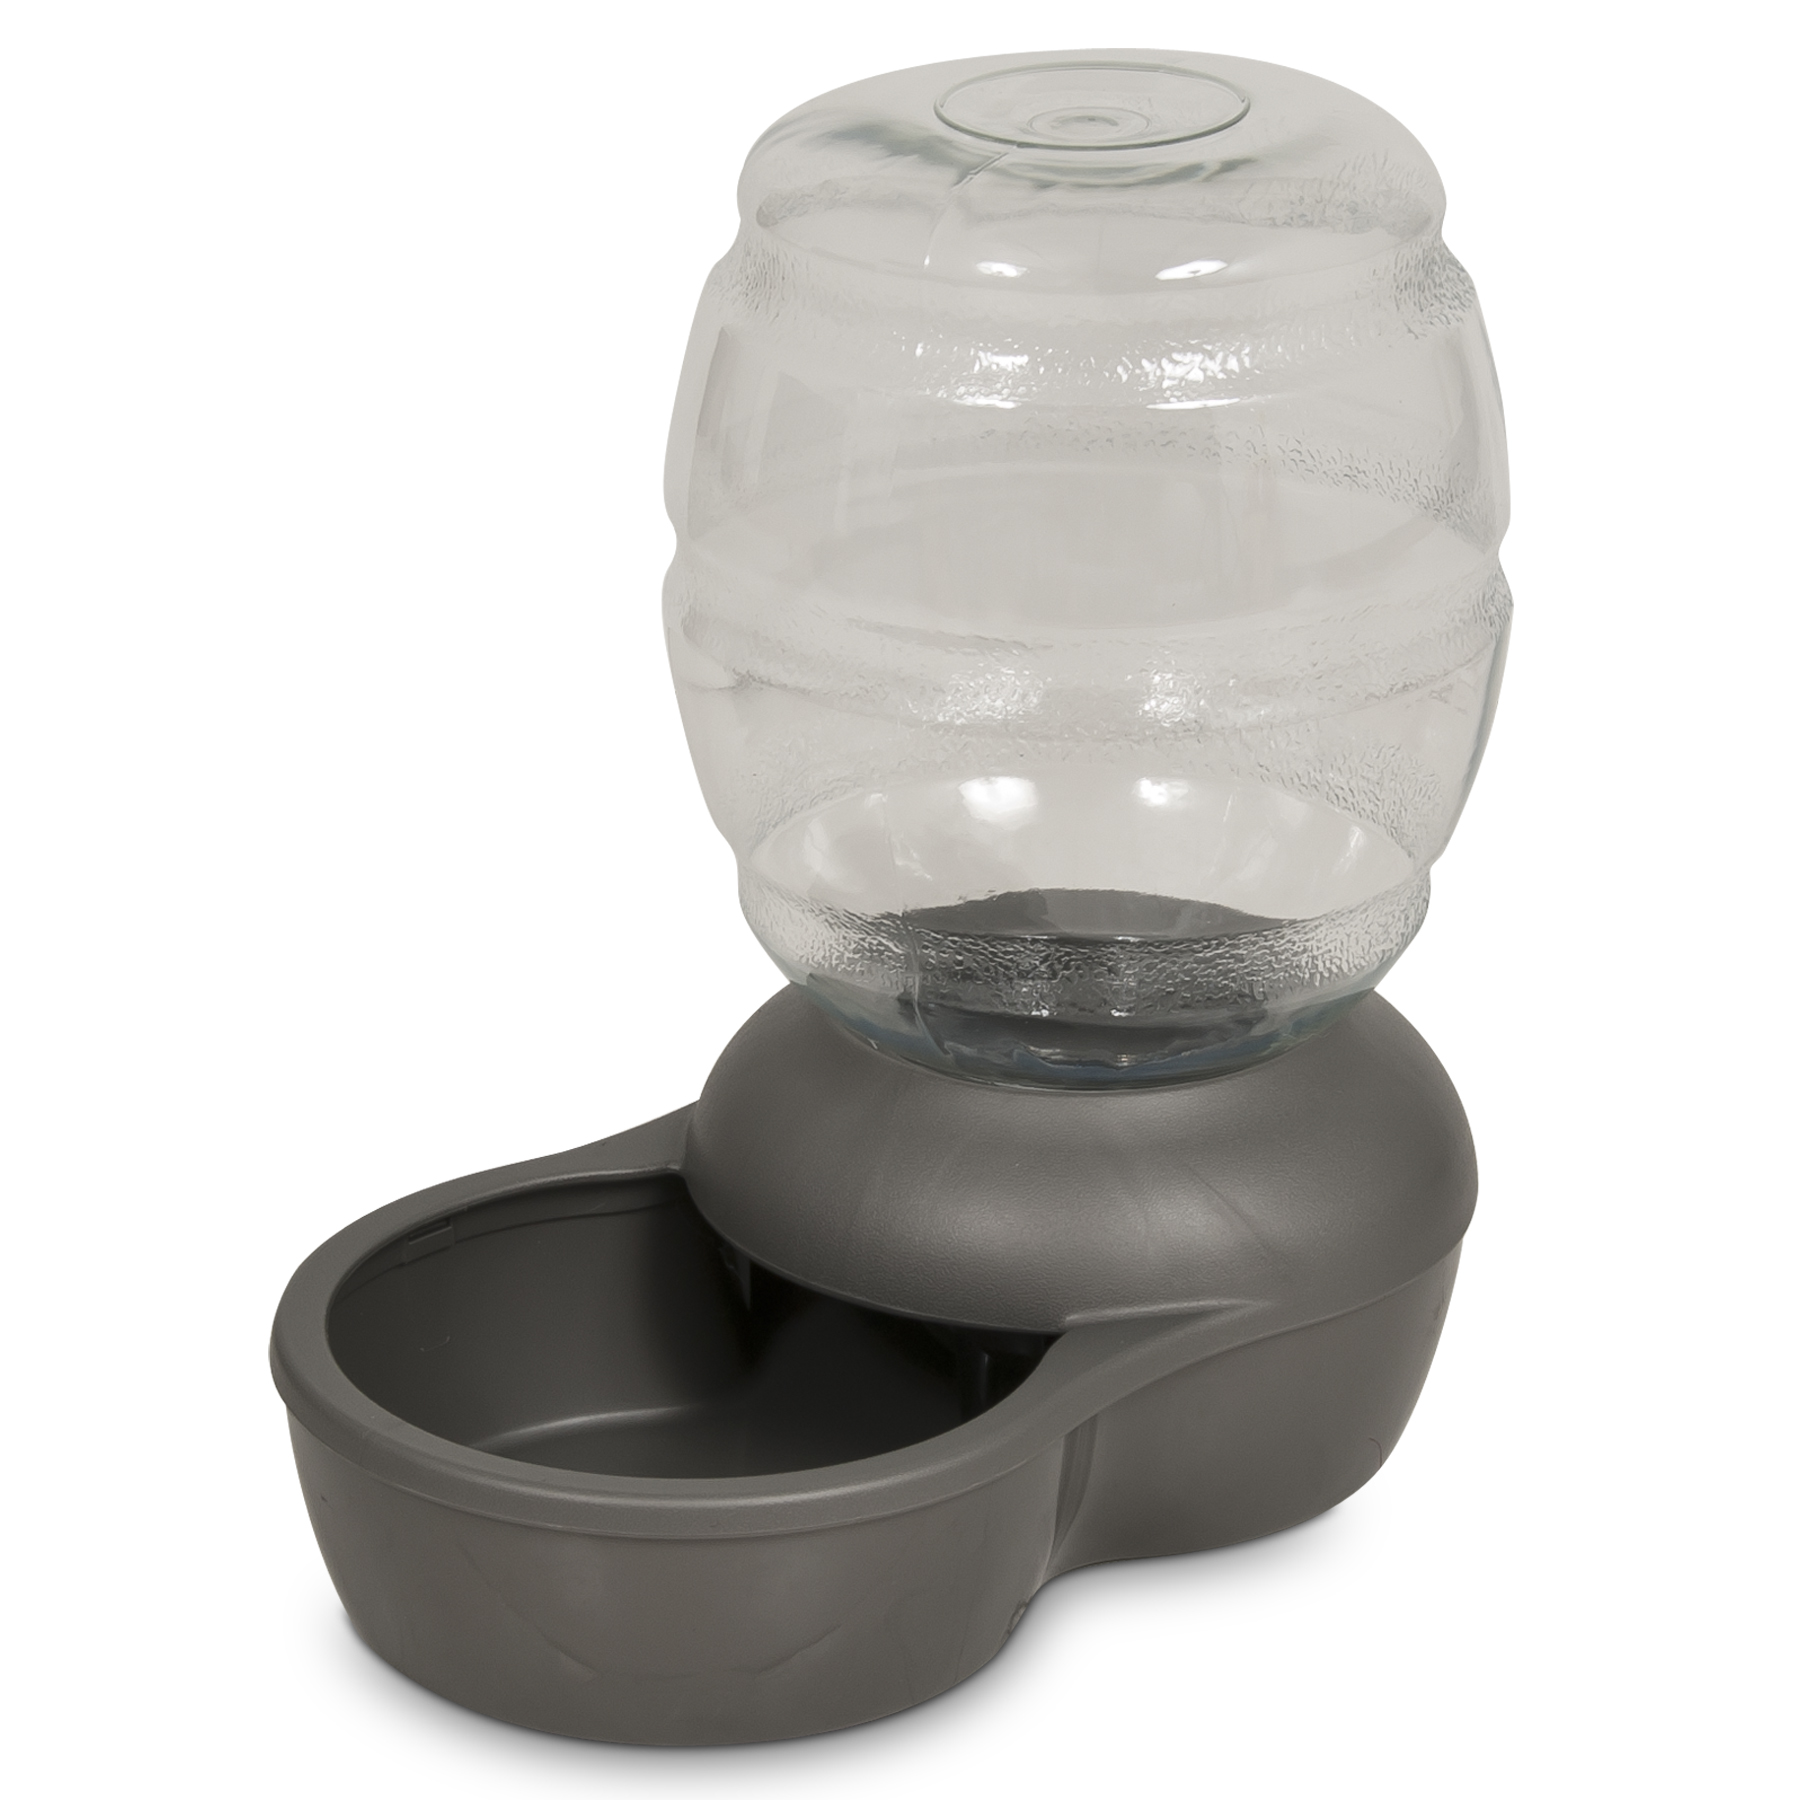 Petmate Replendish Waterer with Microban for Pets, Mason Silver Image